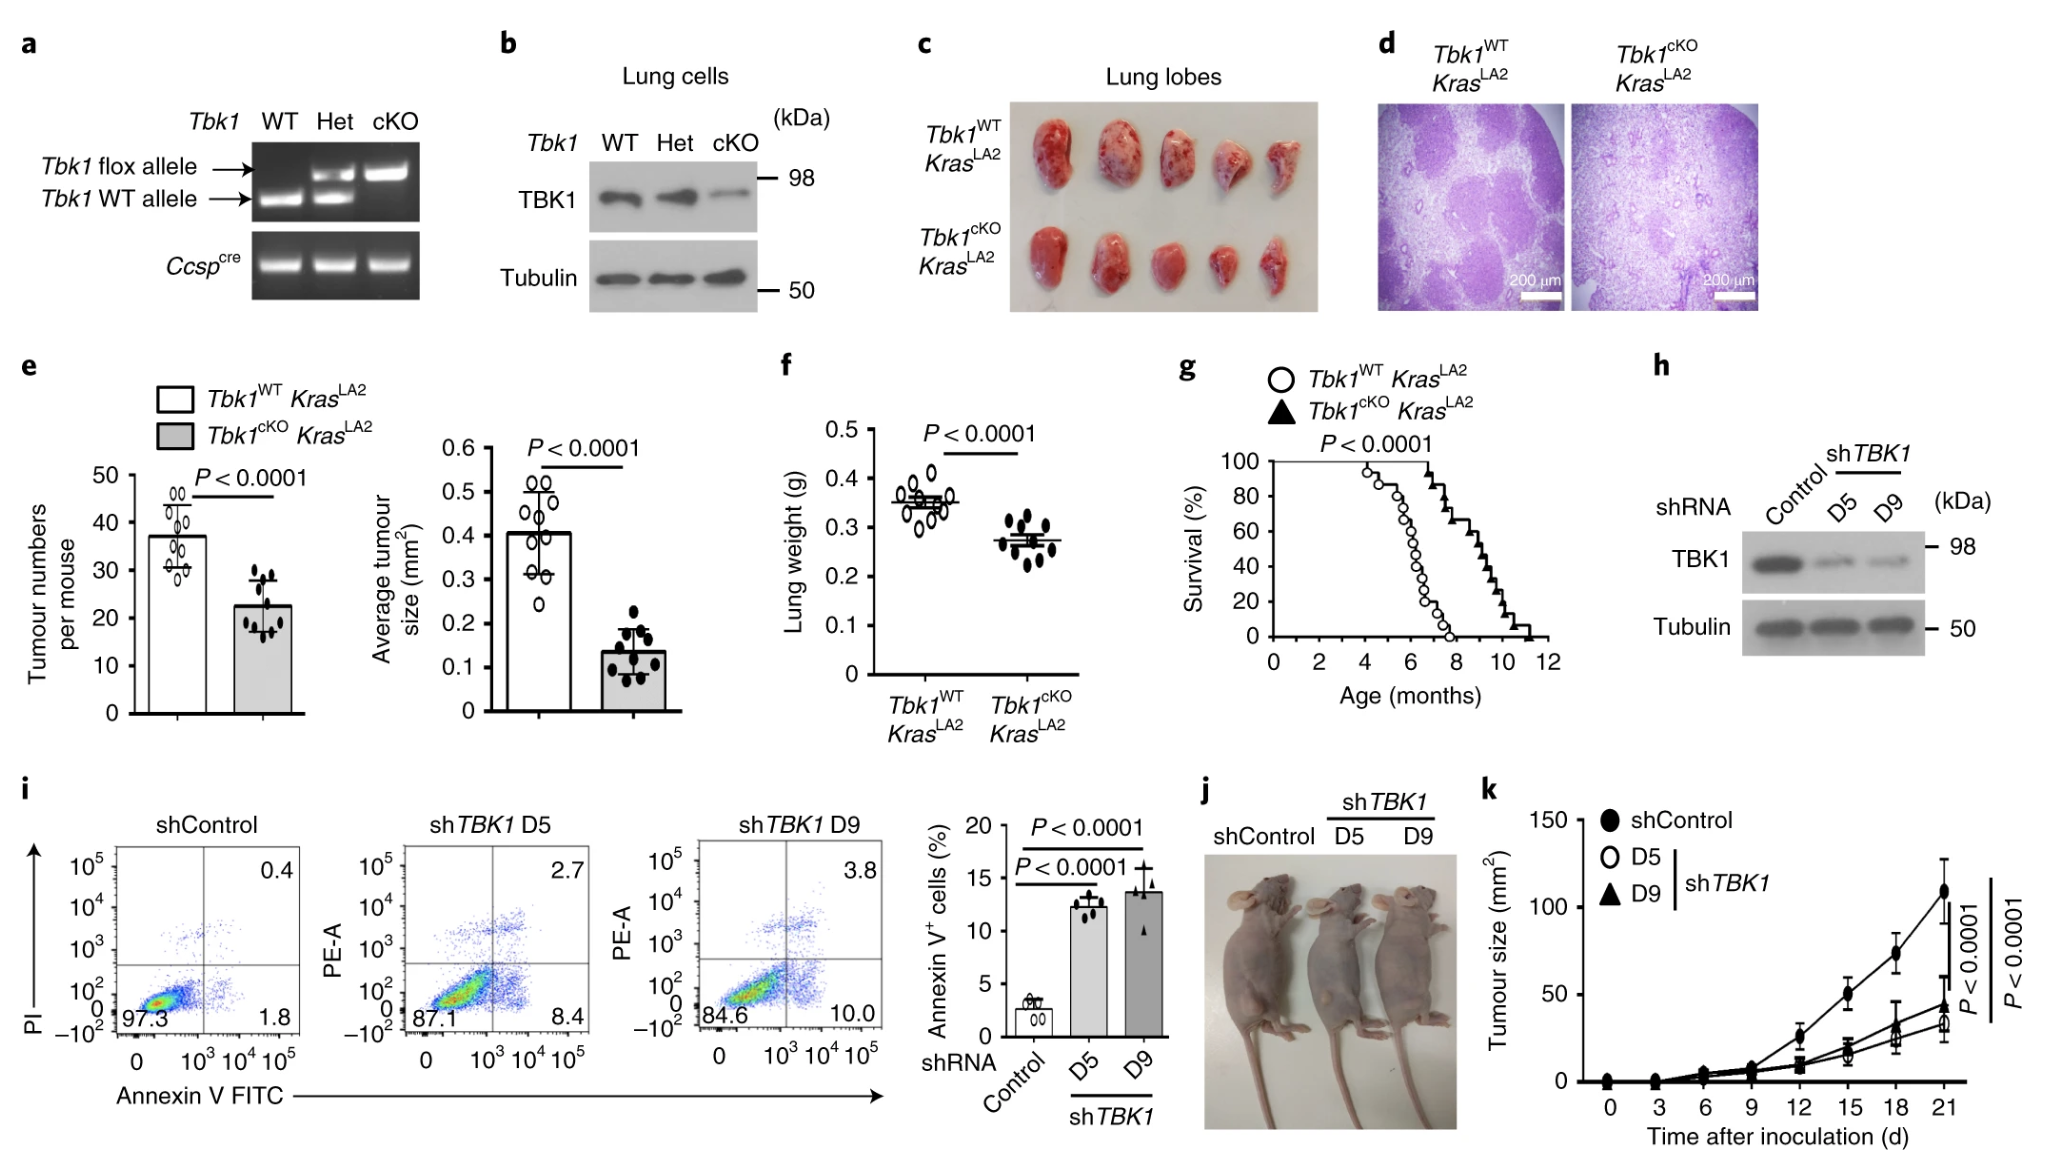 TBKBP1 and TBK1 form a growth factor signalling axis mediating immunosuppression and tumourigenesis